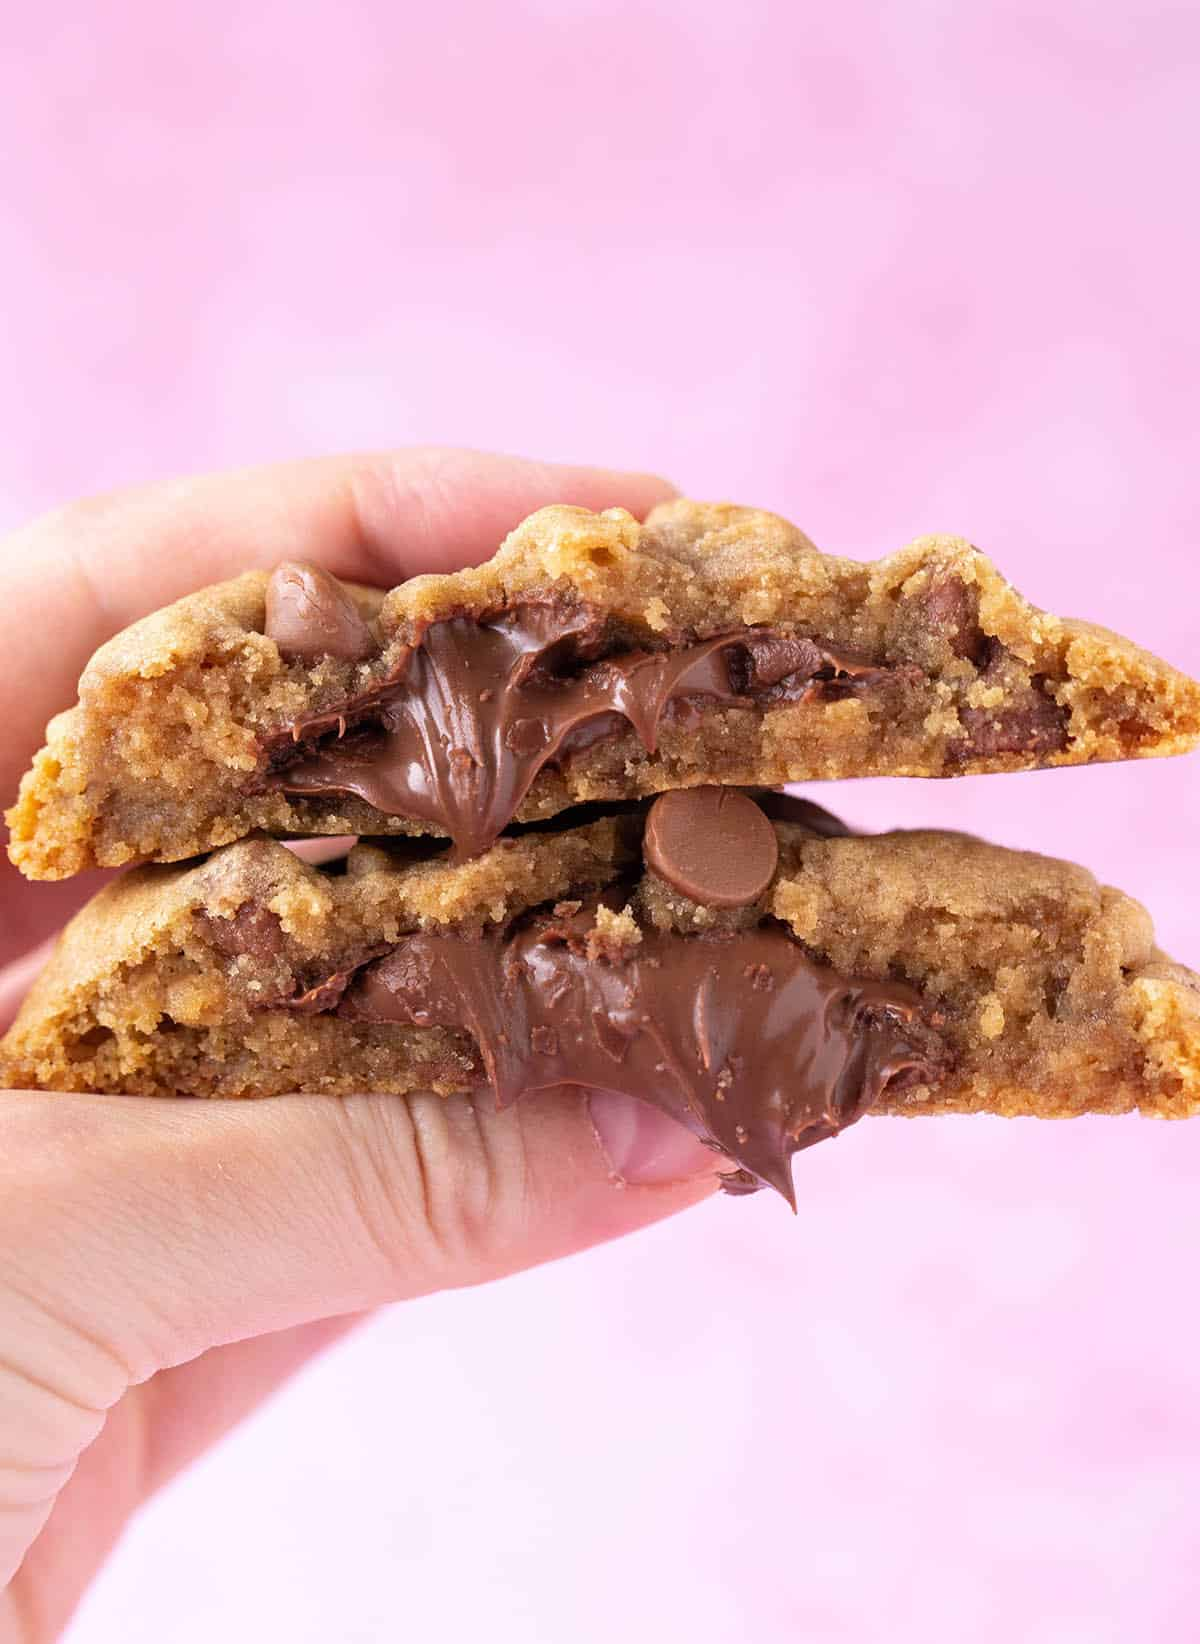 A hand holding a Nutella Stuffed Cookie with gooey Nutella spilling out